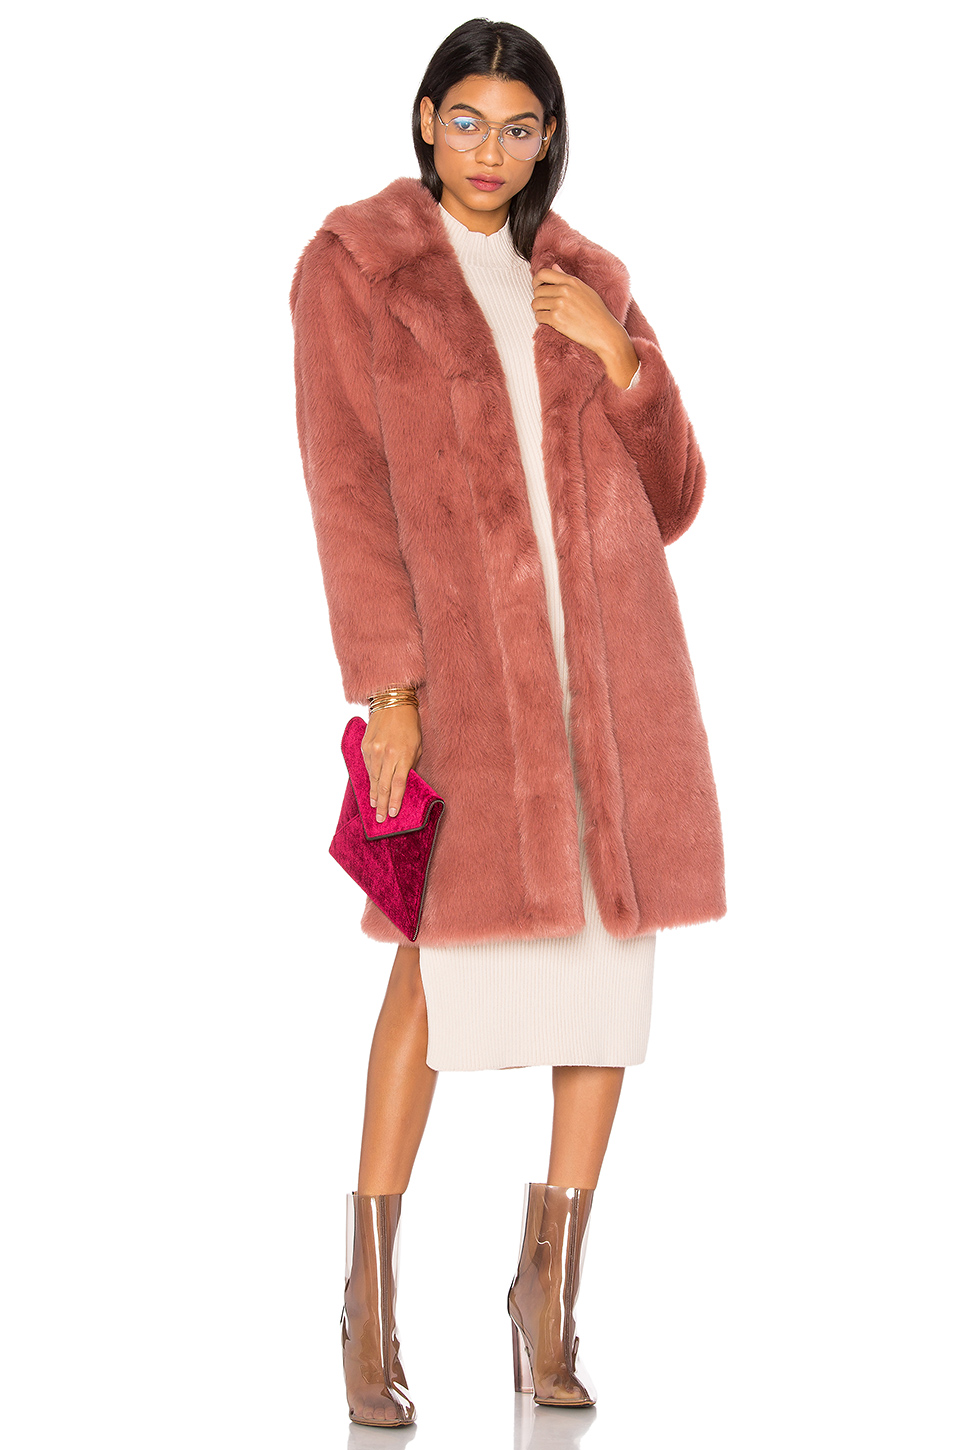 white-dress-bodycon-sweater-pink-bag-clutch-clear-shoe-booties-pink-light-jacket-coat-fur-fuzz-fall-winter-blonde-dinner.jpg